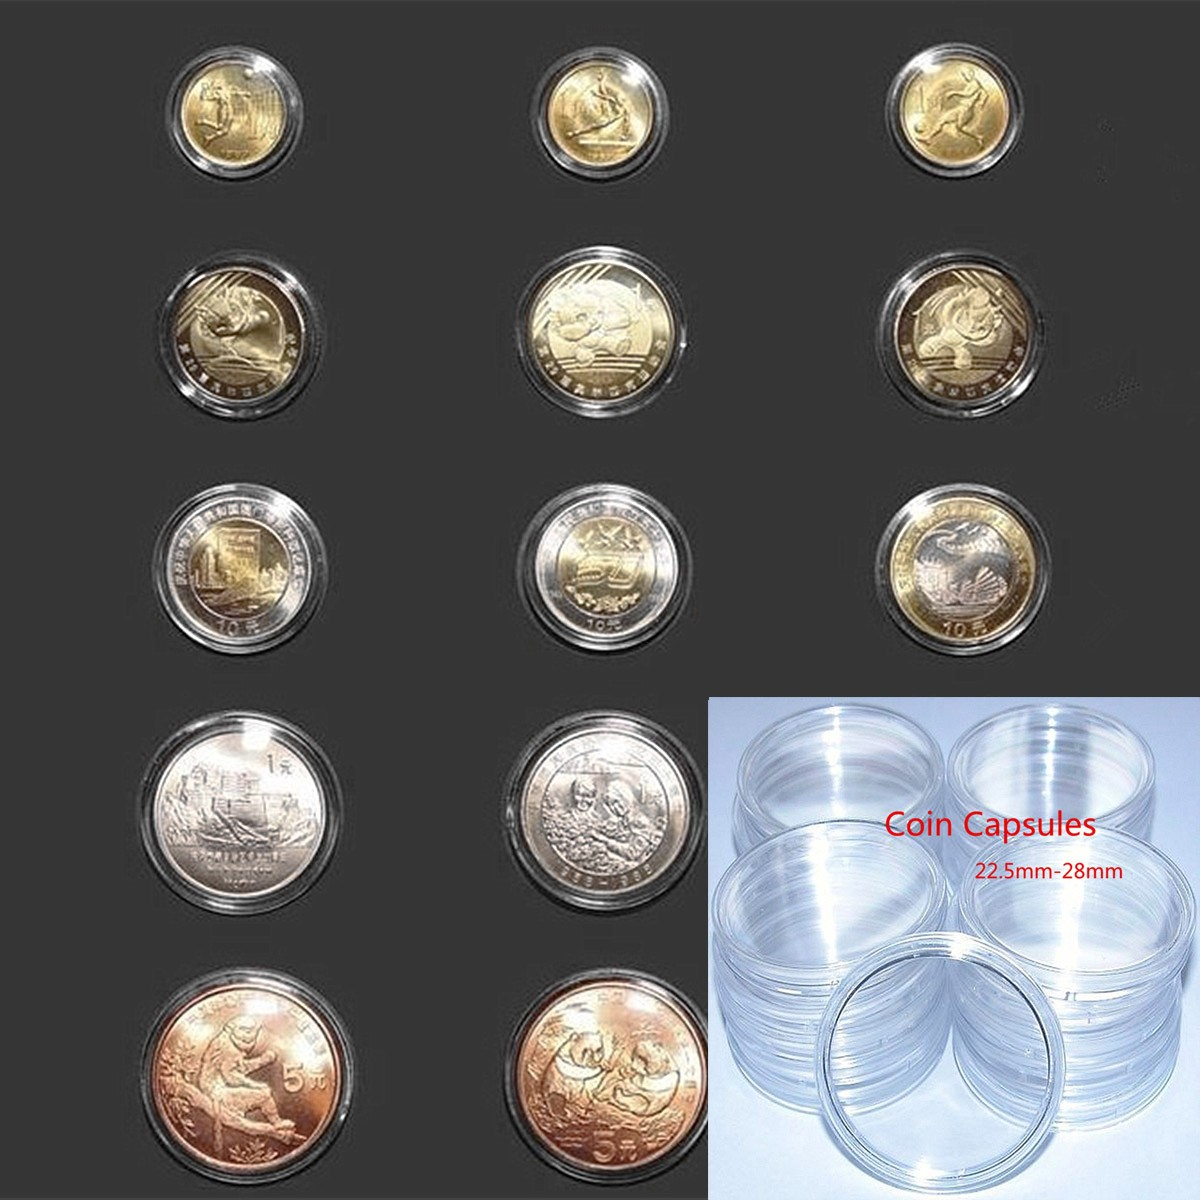 22mm-28mm Coin Capsules Case Coins Holders Specie Container Storage Boxes Organizer Collectibles